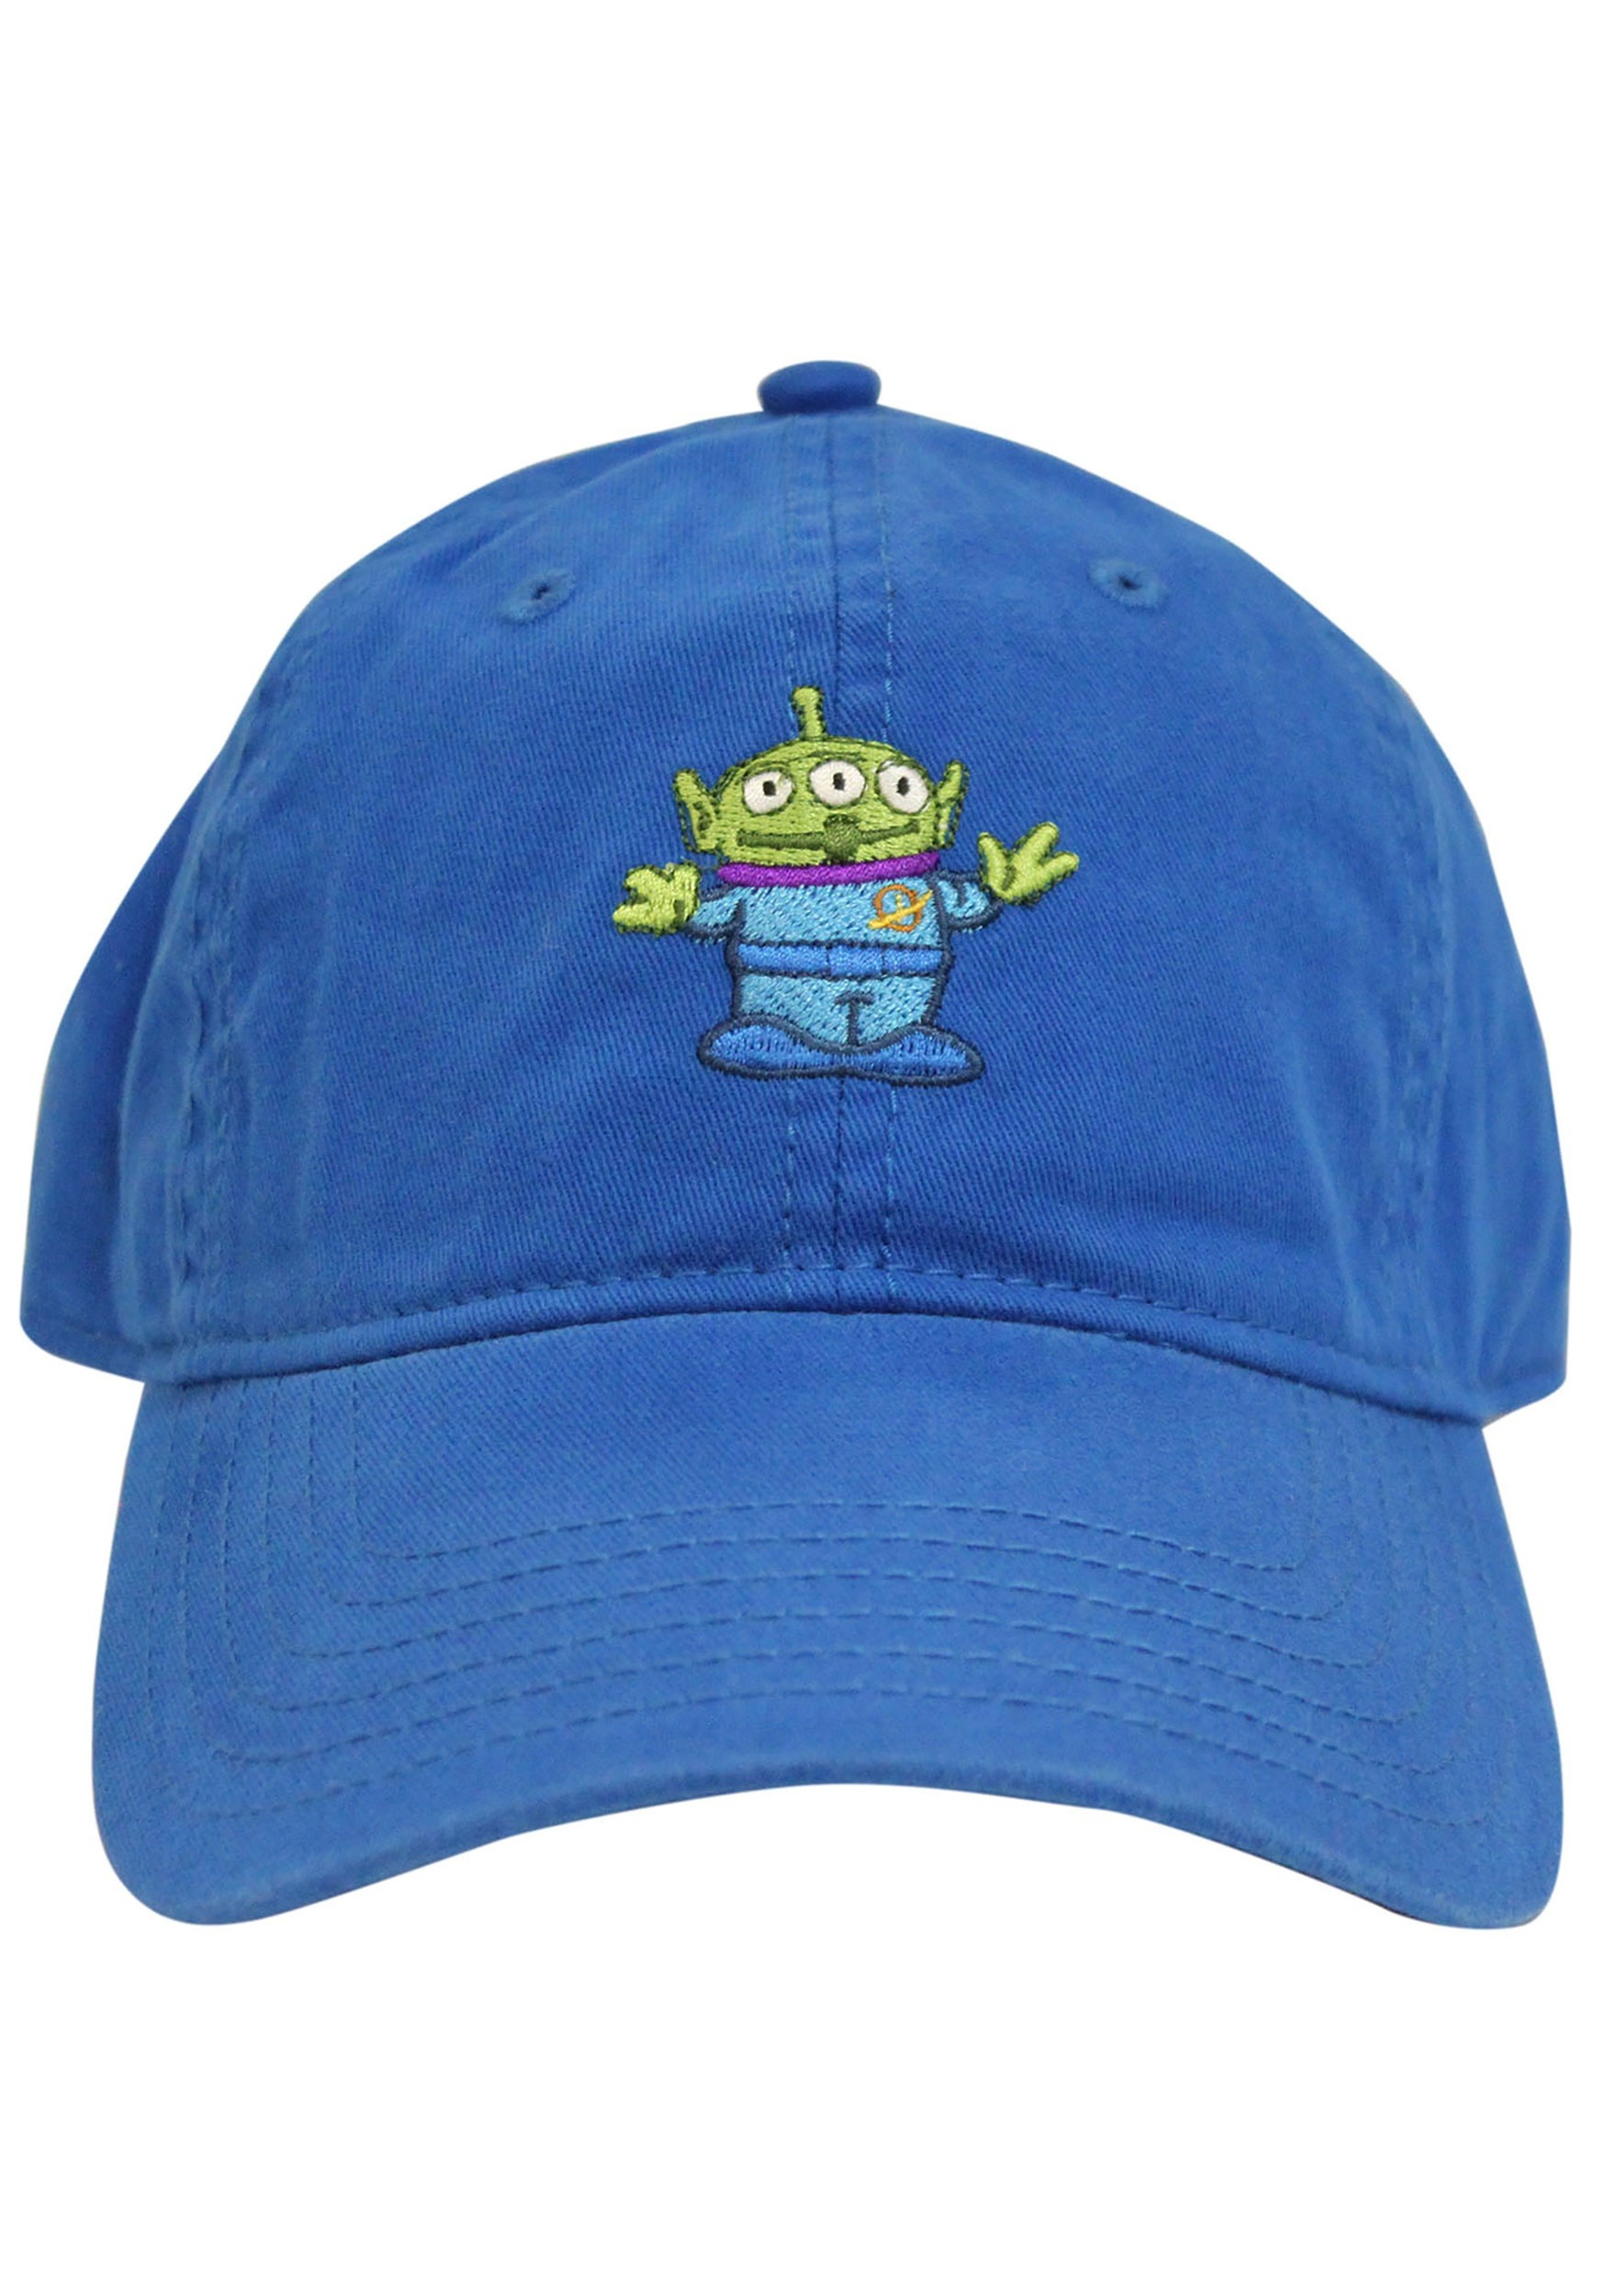 dbfdab0a3429e Toy Story Alien Dad Hat-update1